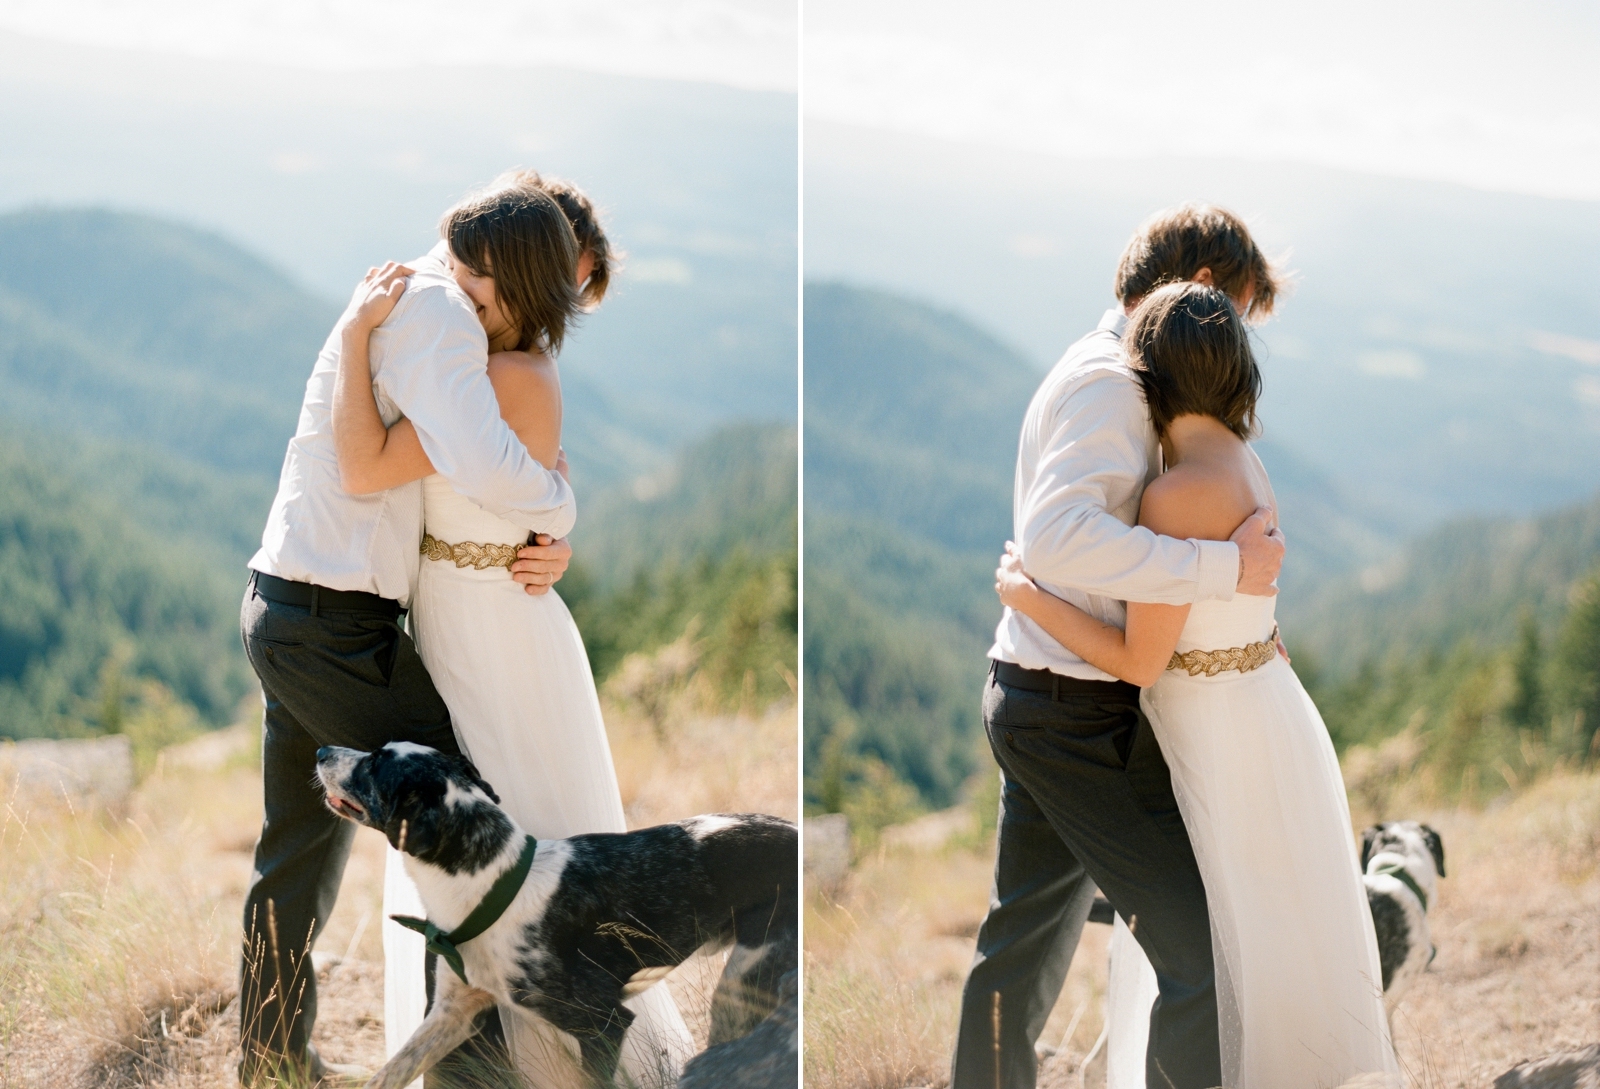 mt hood wedding photographer mt hood oregon wedding photographer shannon griffin_0064.jpg